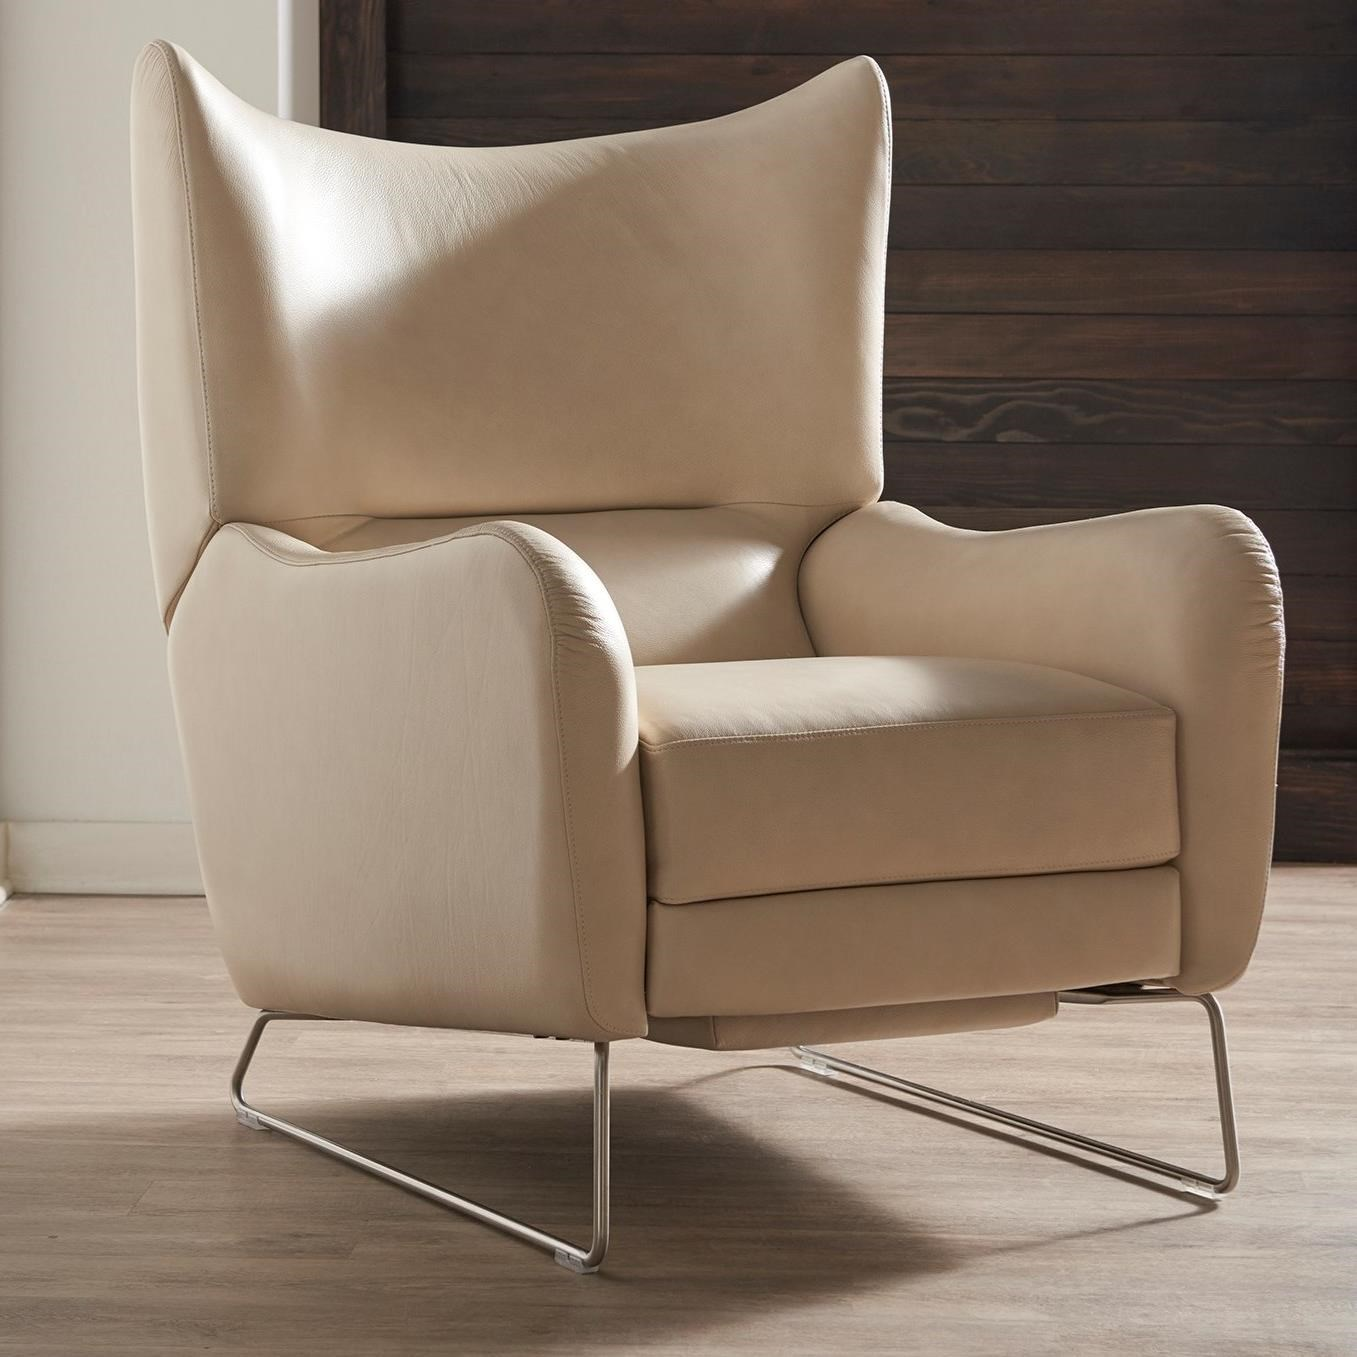 Neeson Push Back Reclining Chair by American Leather at Baer's Furniture